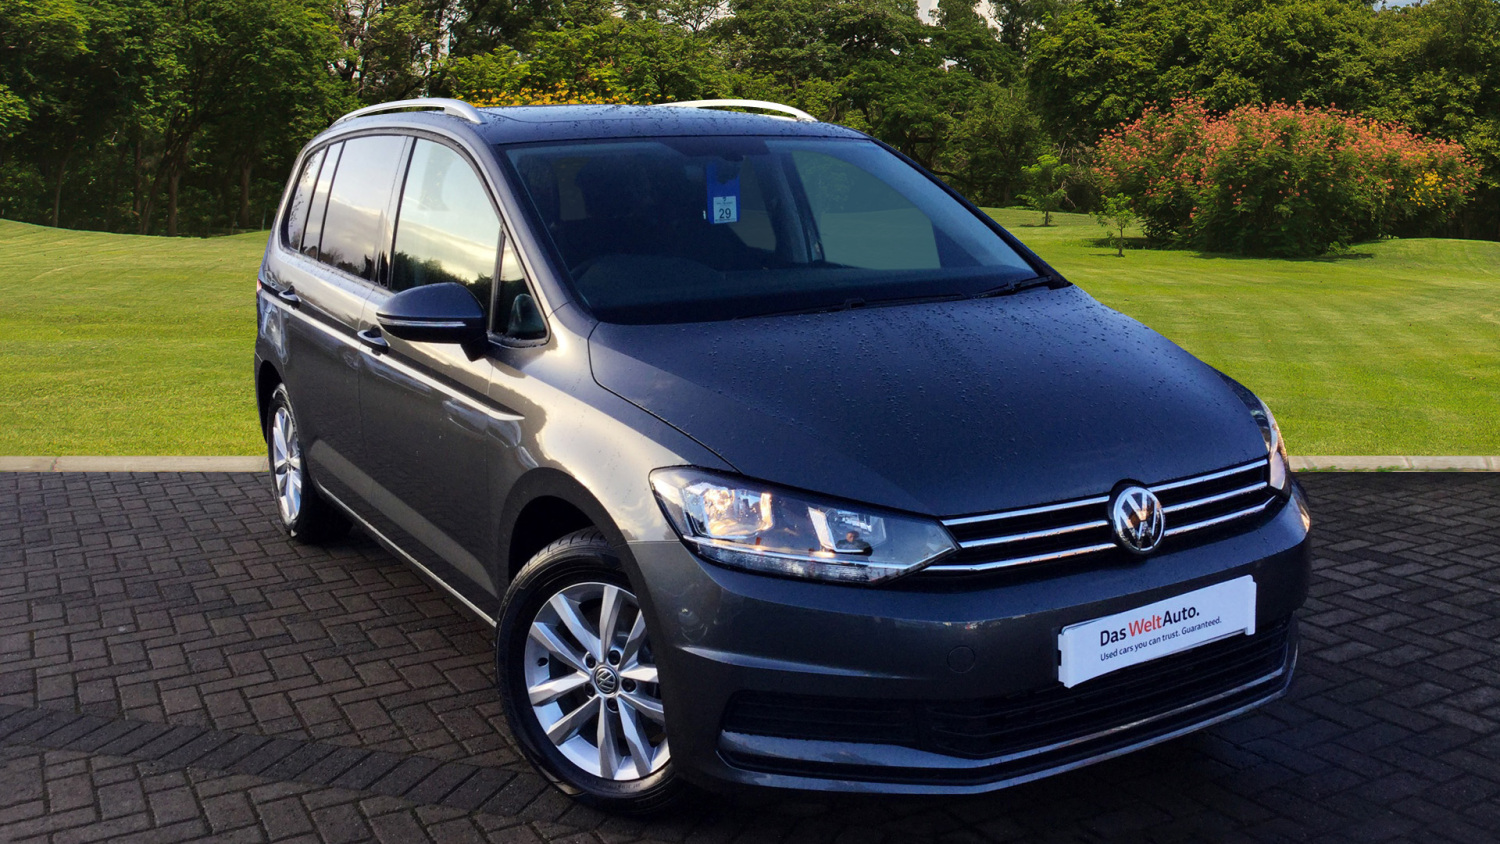 used volkswagen touran 2 0 tdi se family 5dr dsg diesel estate for sale vertu volkswagen. Black Bedroom Furniture Sets. Home Design Ideas